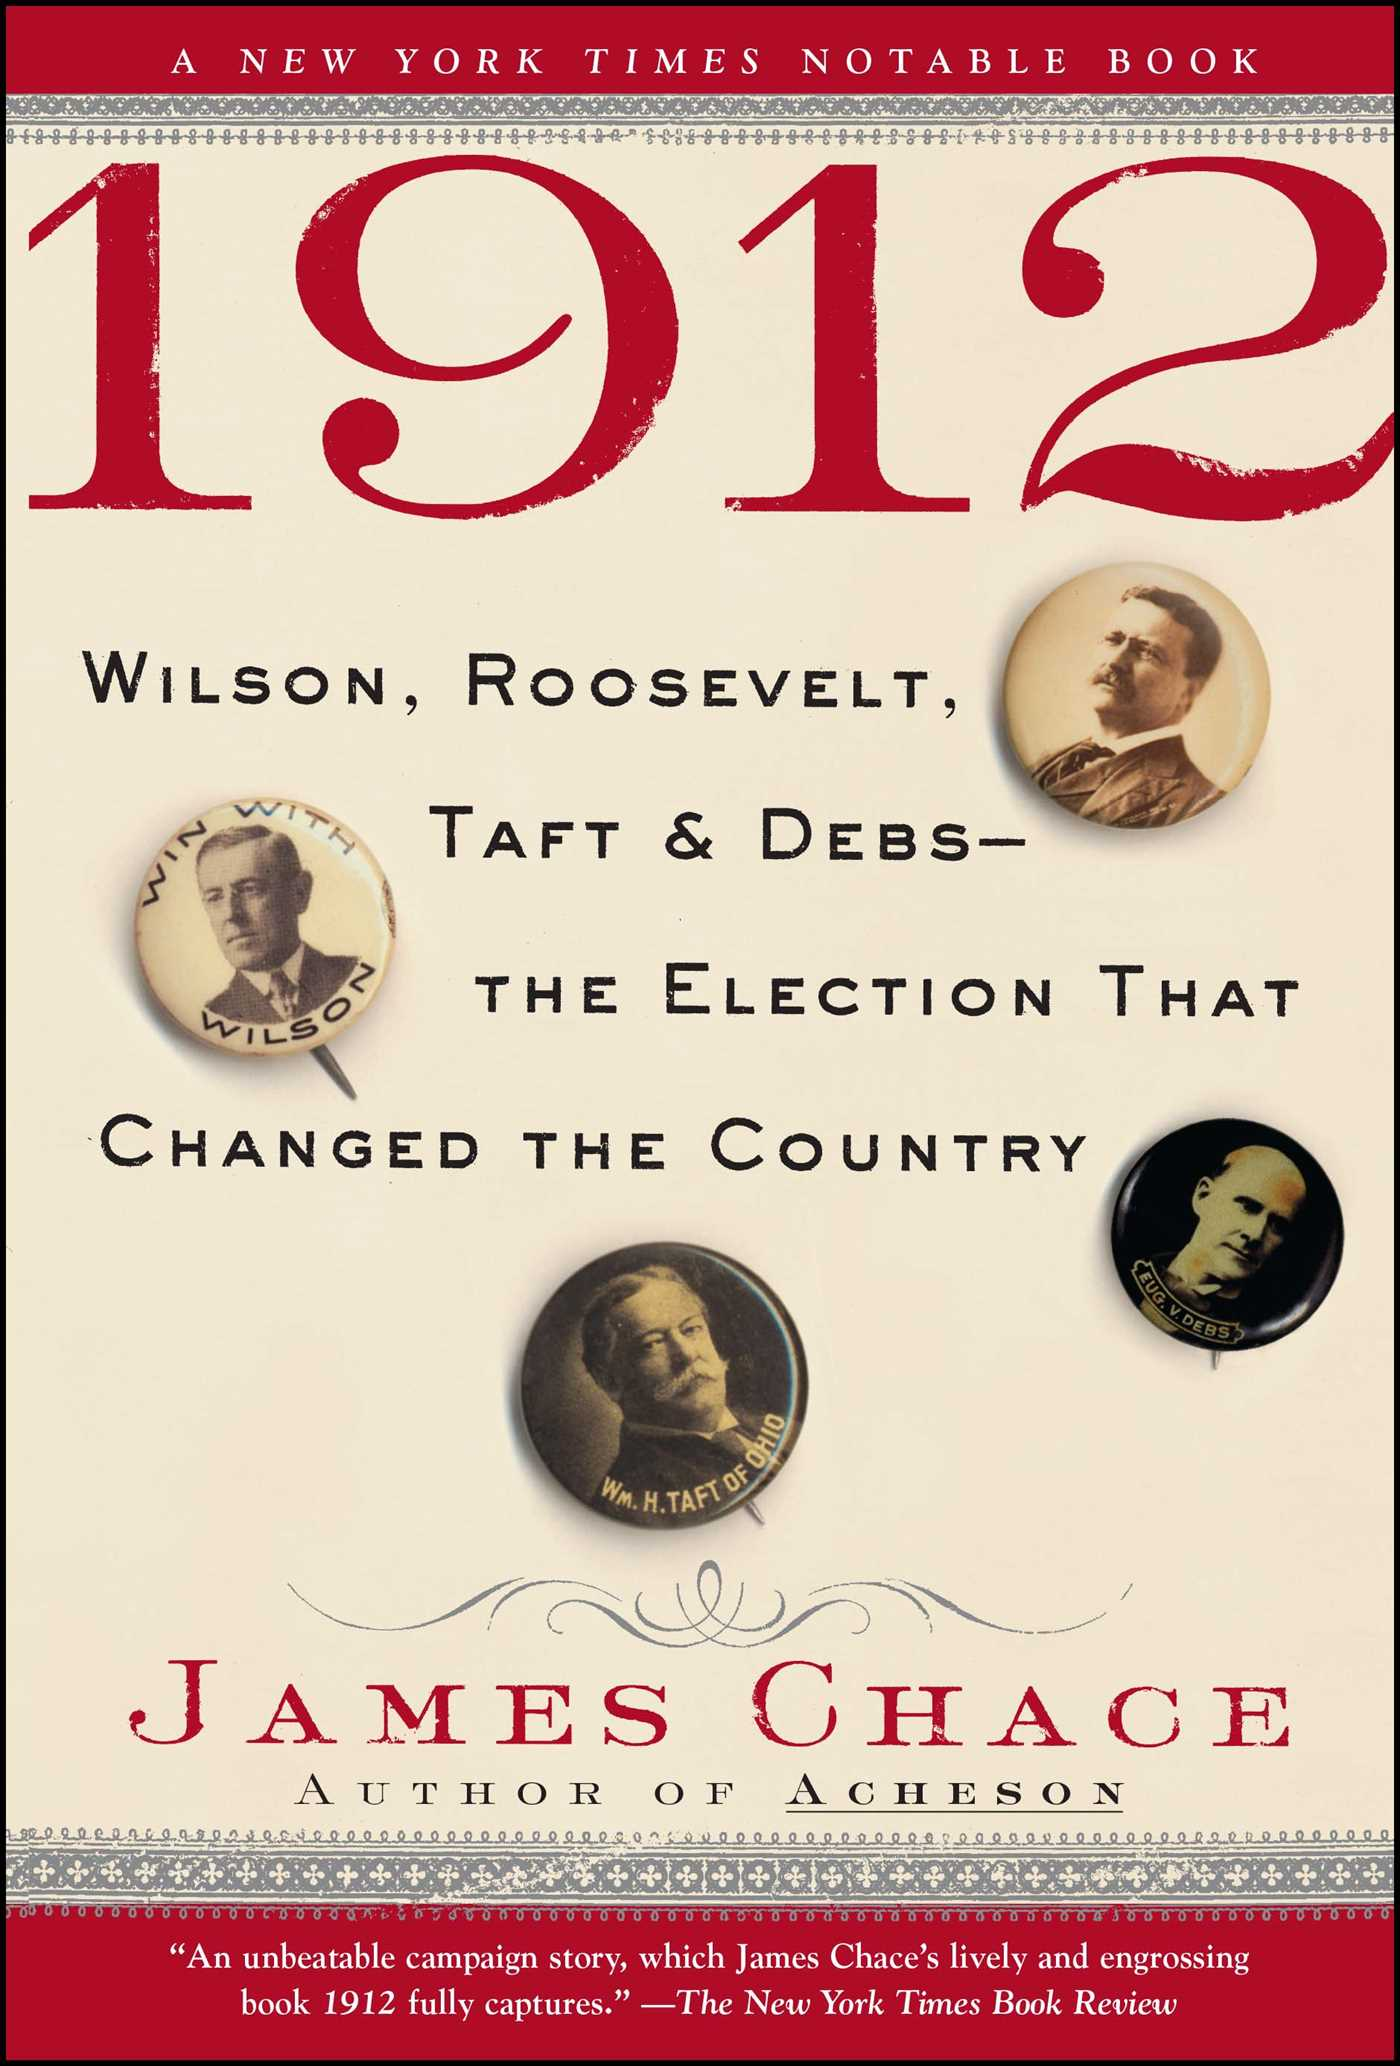 1912 james chace thesis The resource 1912 : wilson, roosevelt, taft & debs-- the election that changed the country, james chace.